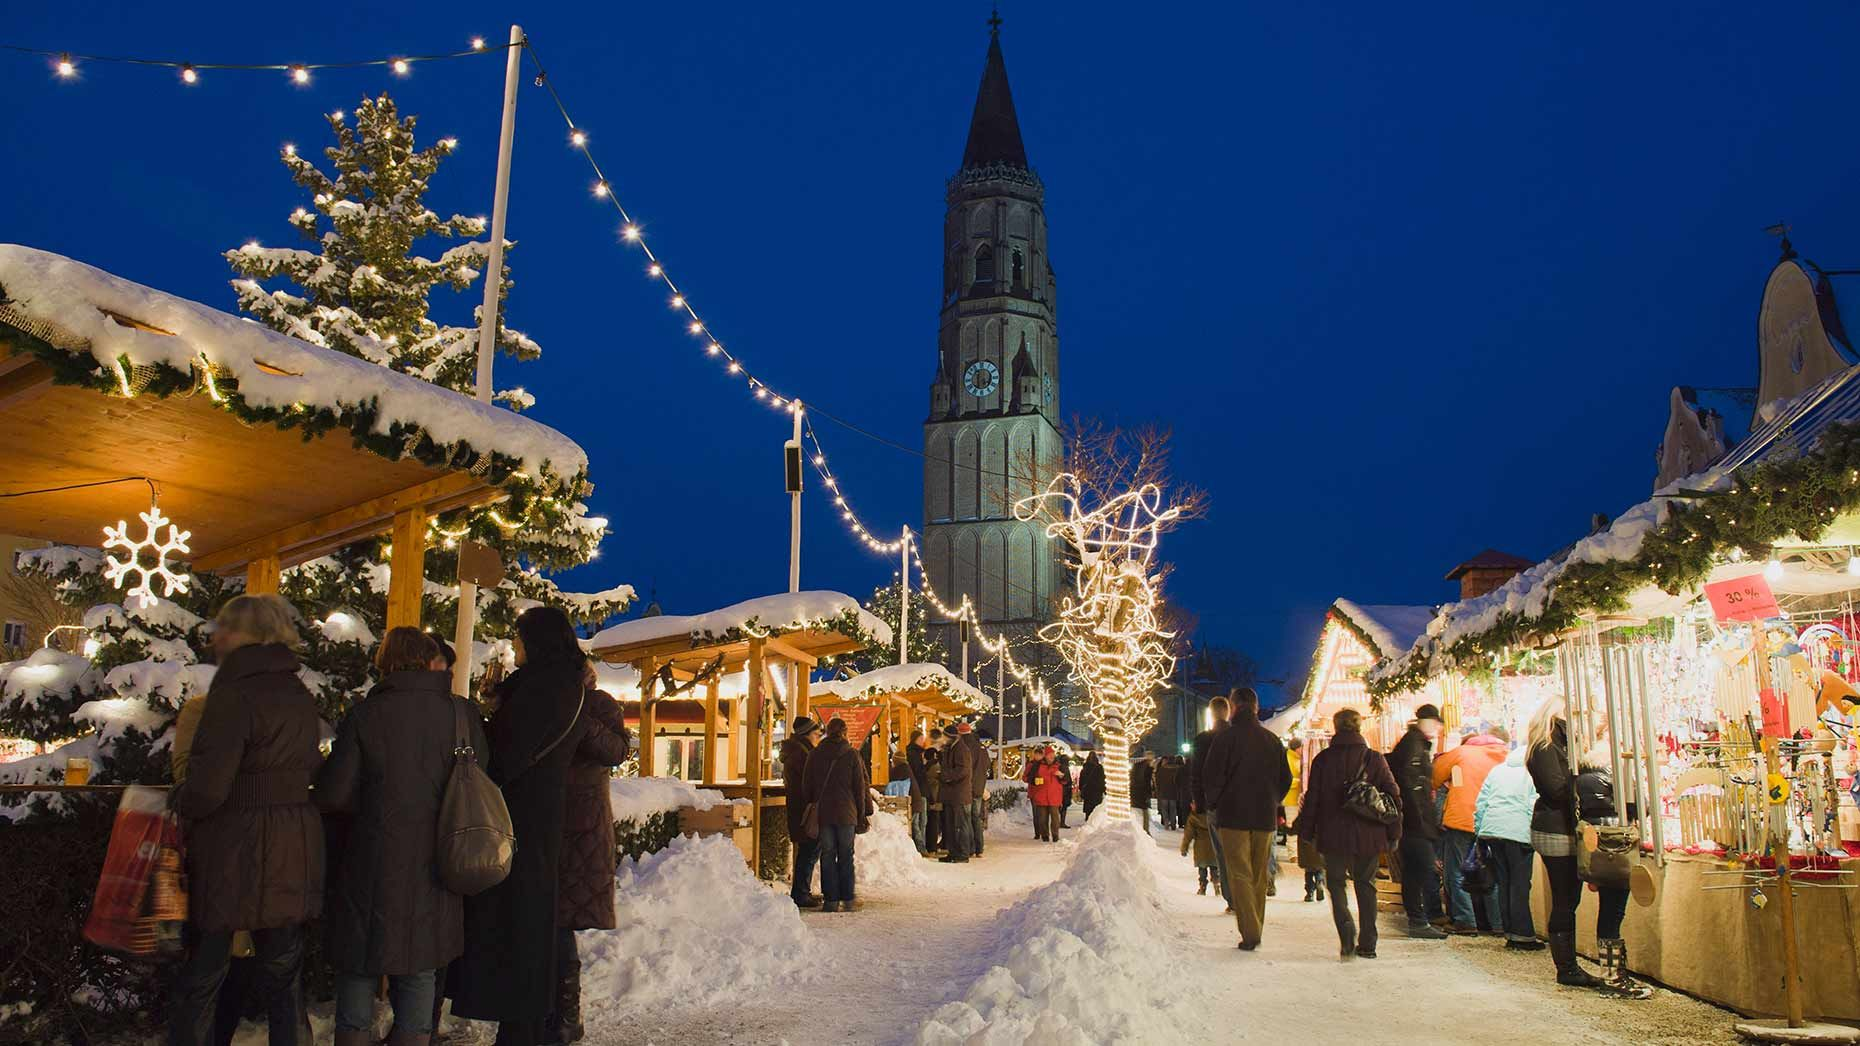 White Christmas In Germany.Places Most Likely To Have A White Christmas Germany You Re